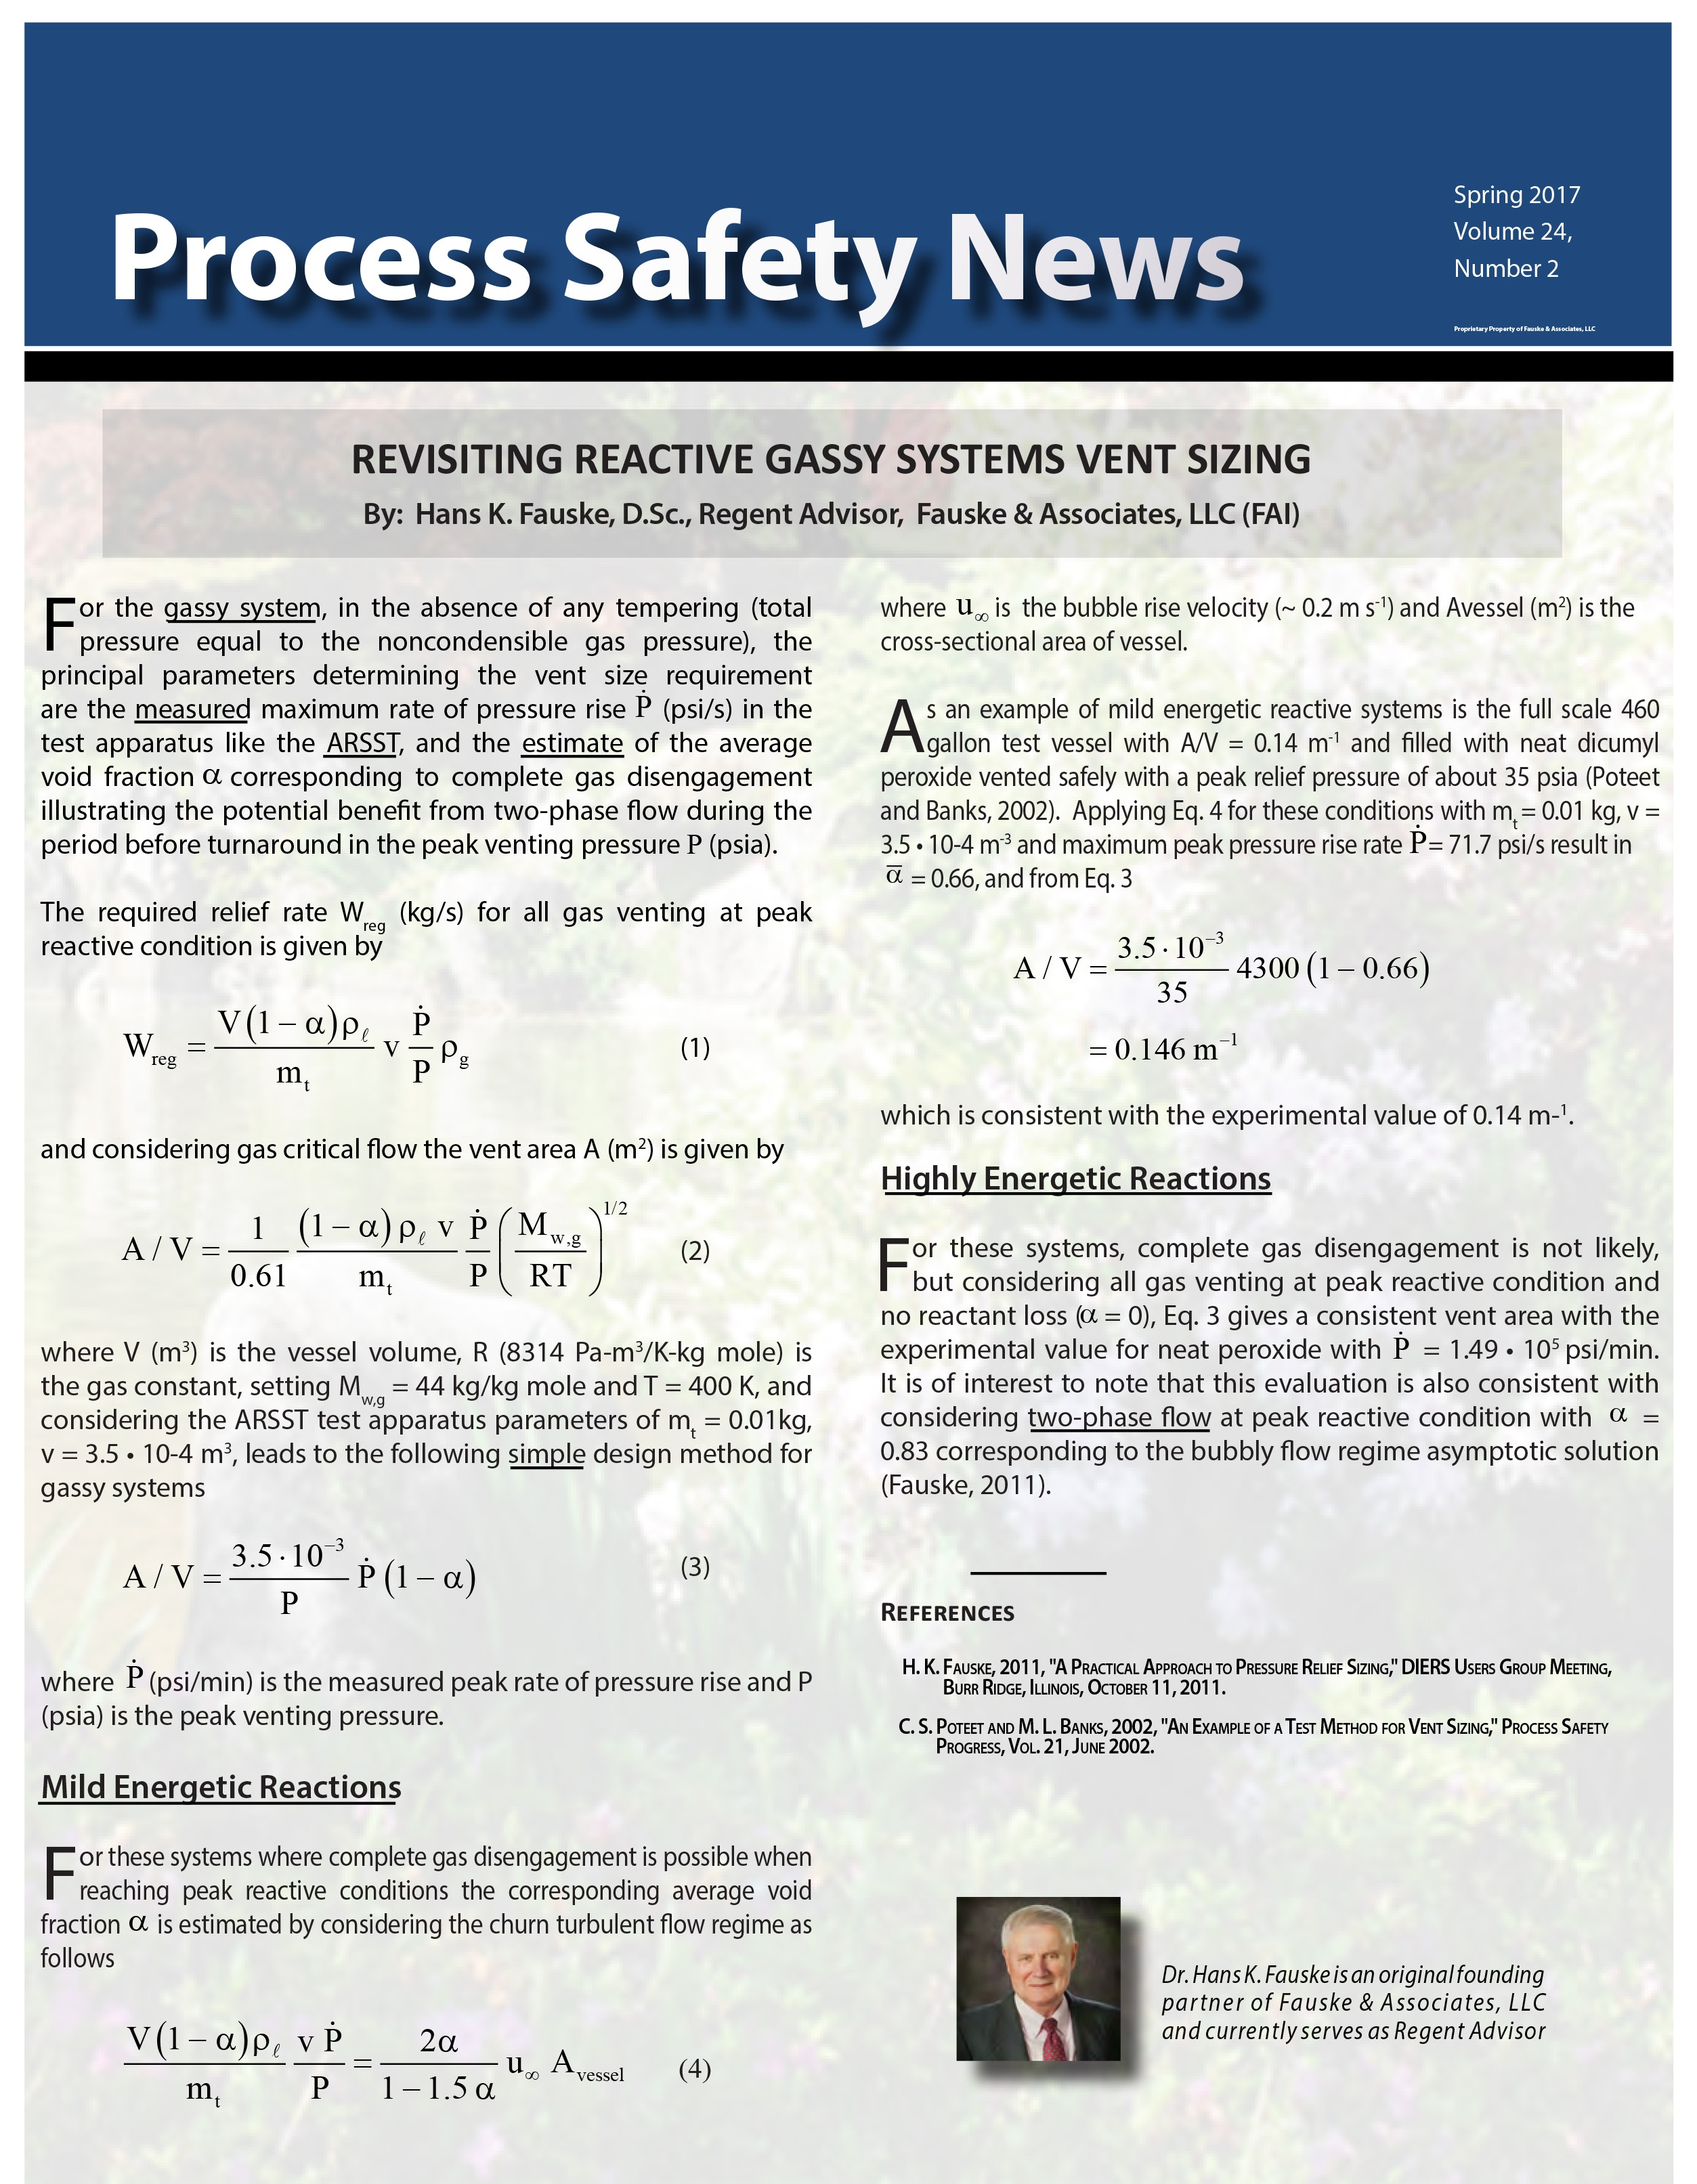 Process Safety News - Spring 2017